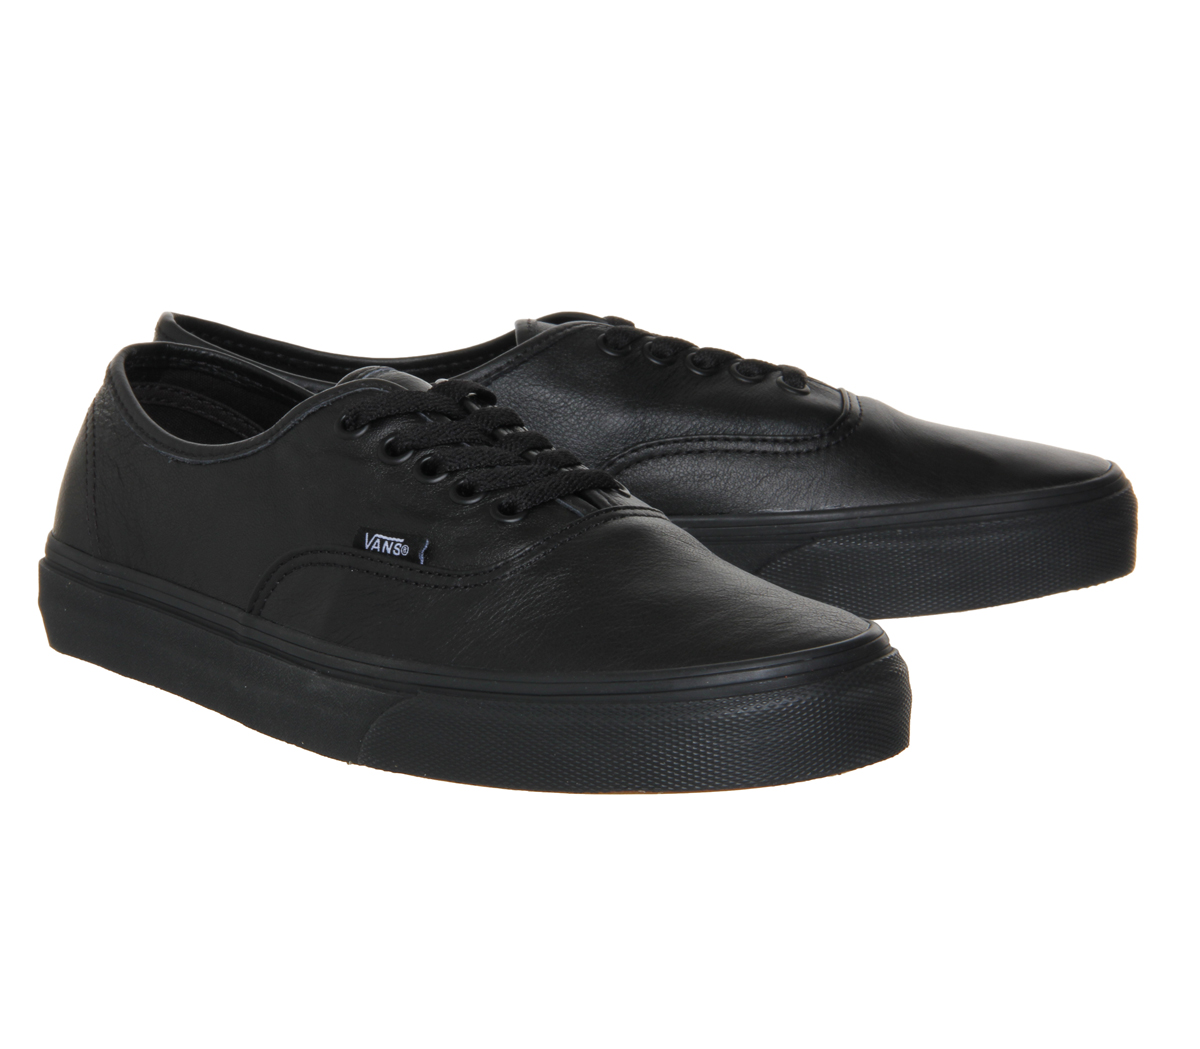 f3830d8aea Mens-Vans-Authentic-Leather-Black-Mono-Trainers-Shoes thumbnail